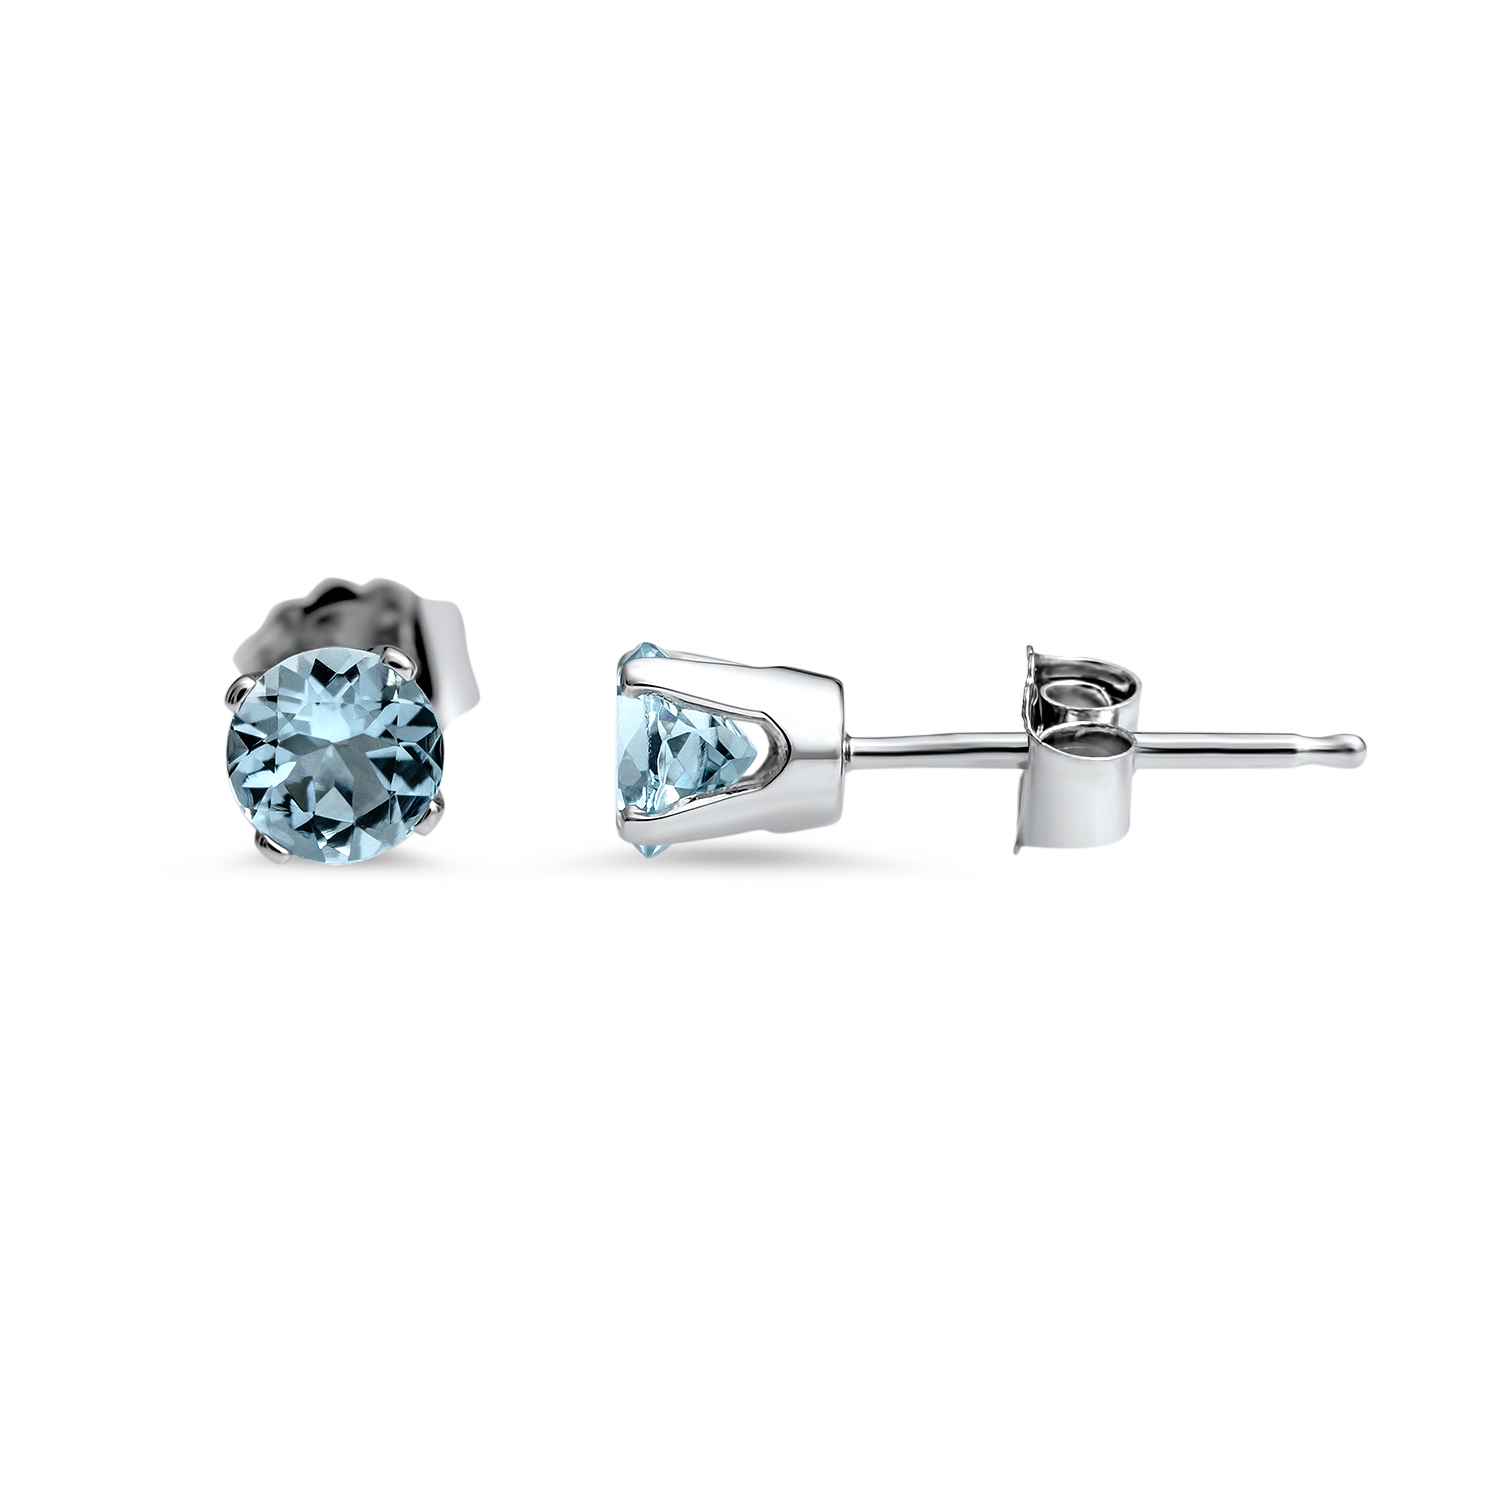 14k White Gold 4 mm Aquamarine Stud Earrings